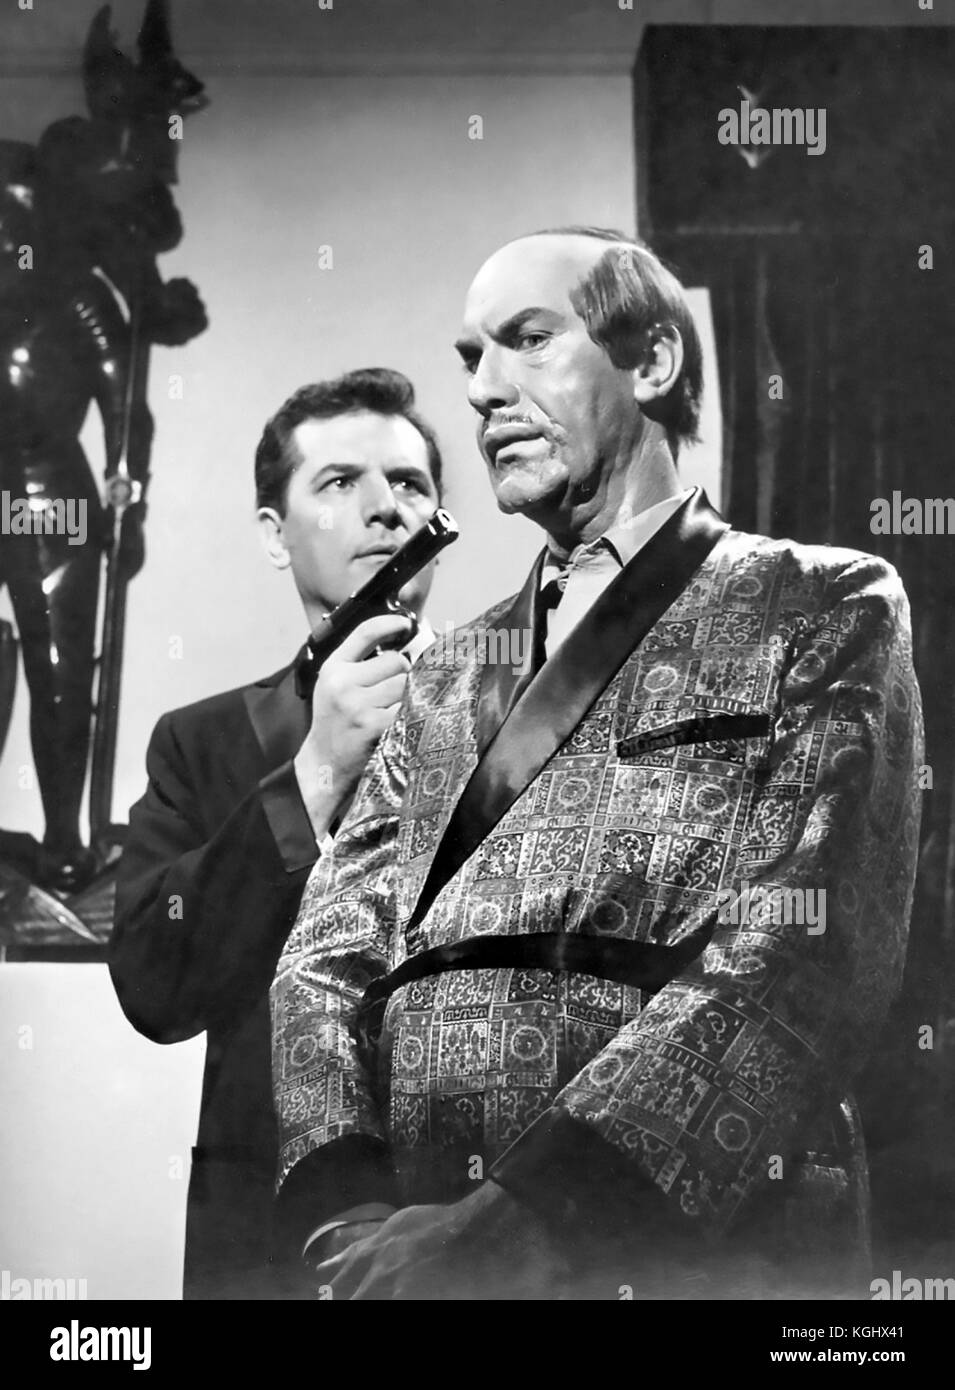 MISSION IMPOSSIBLE CBS TV series 1966-1973. Martin Landau at right and Steven Hill in the first episode screened - Stock Image